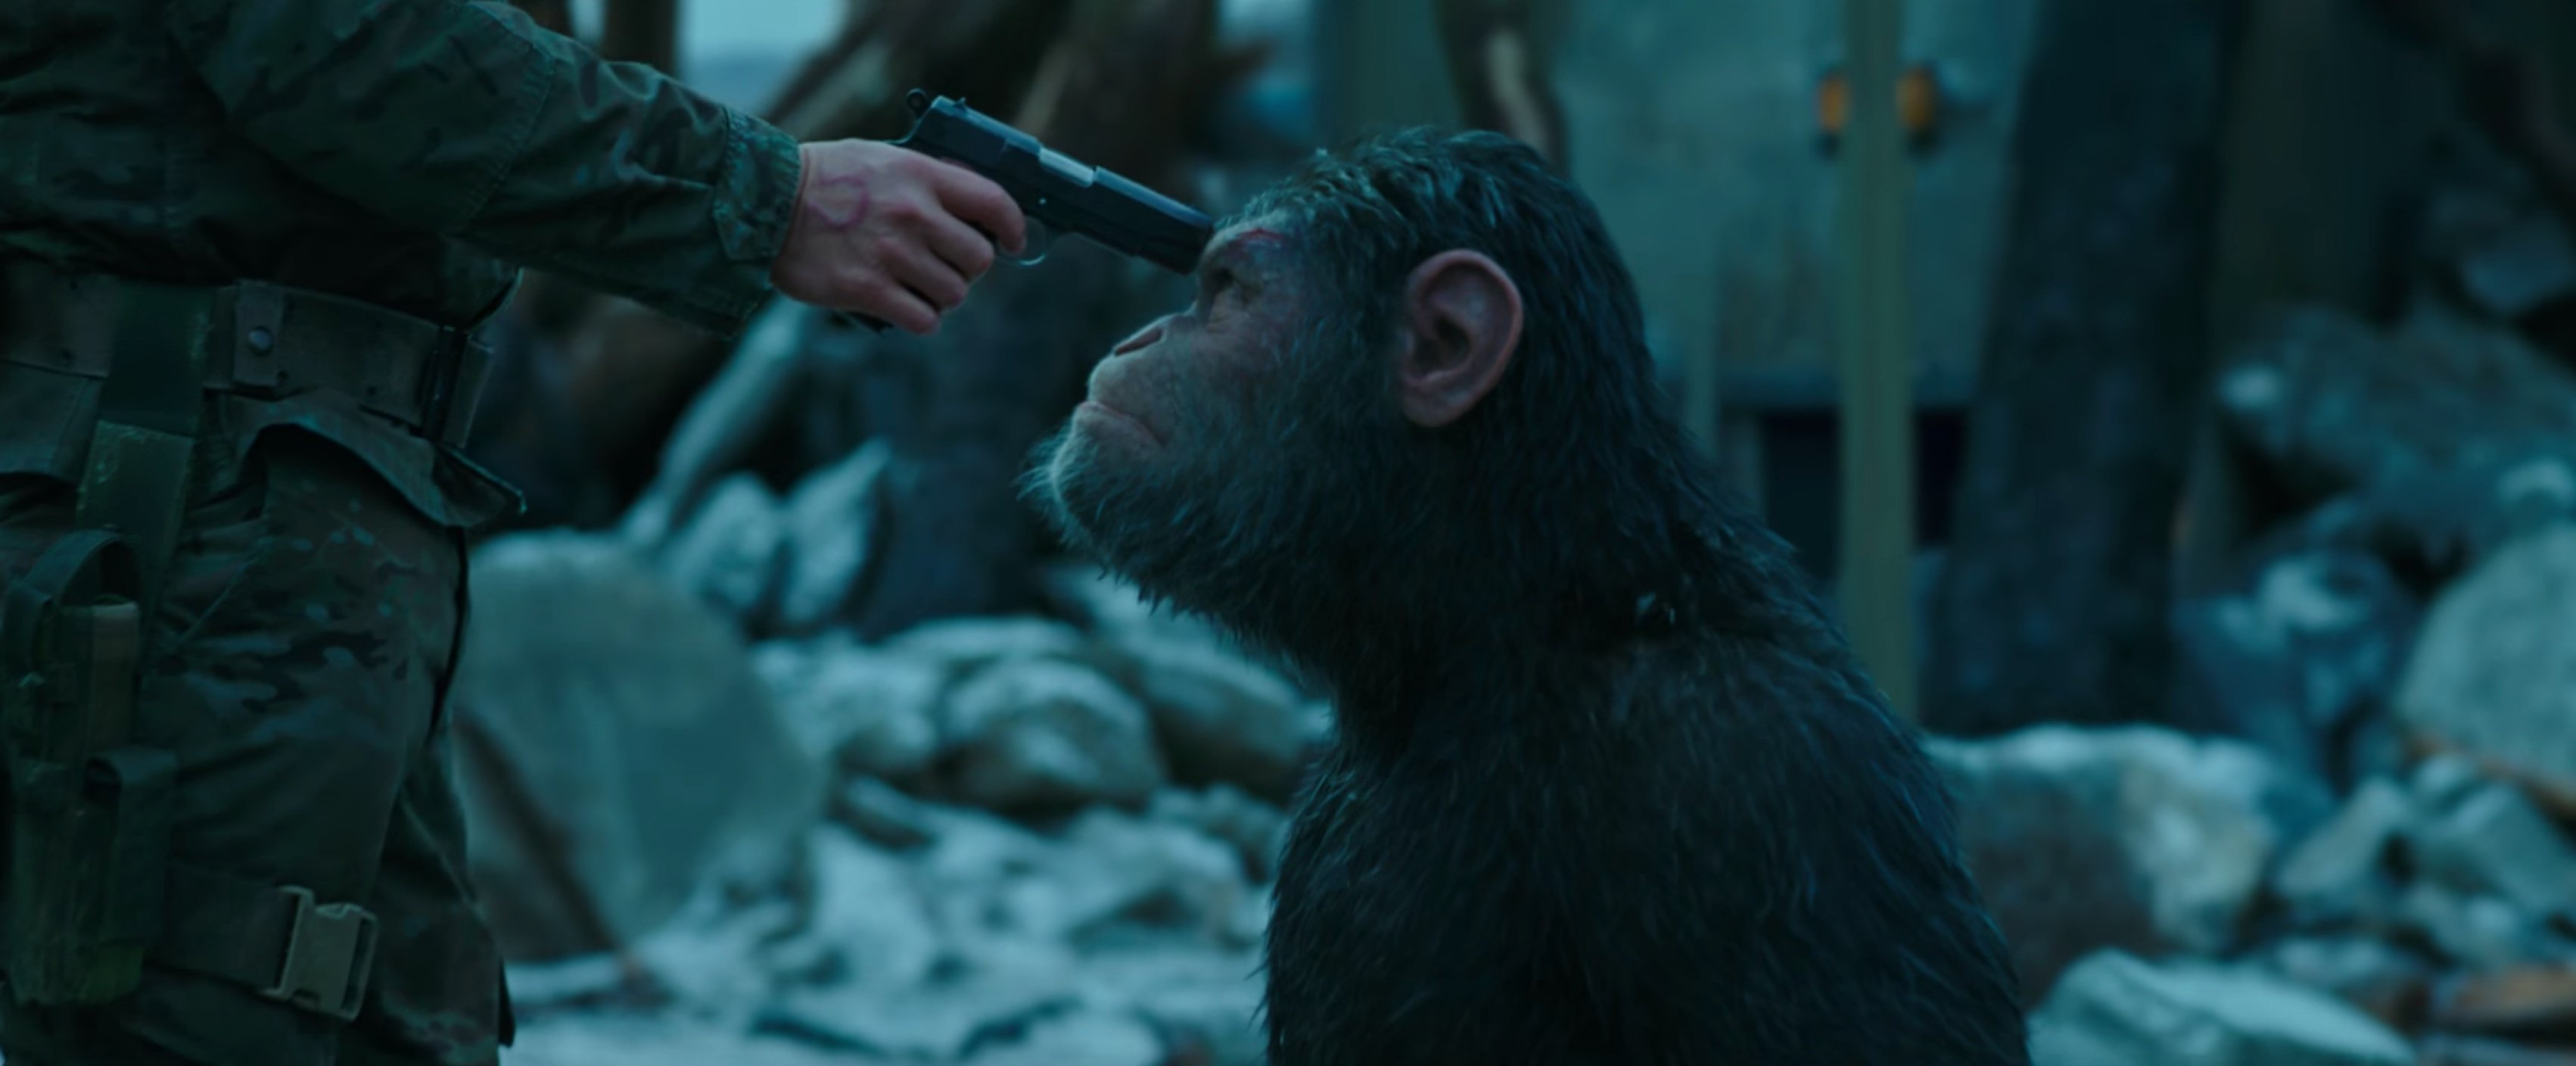 War For The Planet Of The Apes Backgrounds on Wallpapers Vista